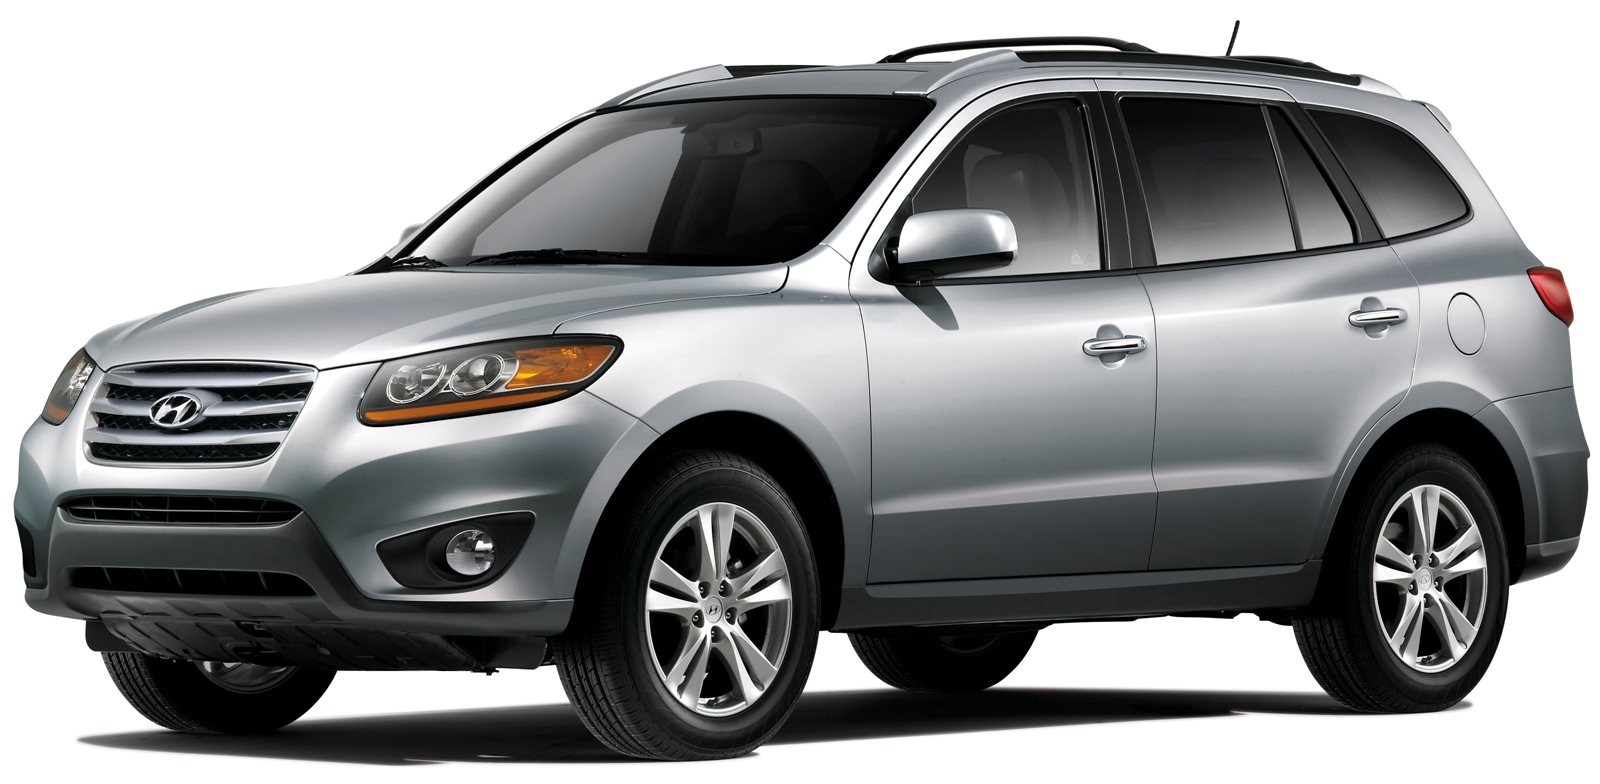 2012 hyundai santa fe review ratings specs prices and. Black Bedroom Furniture Sets. Home Design Ideas